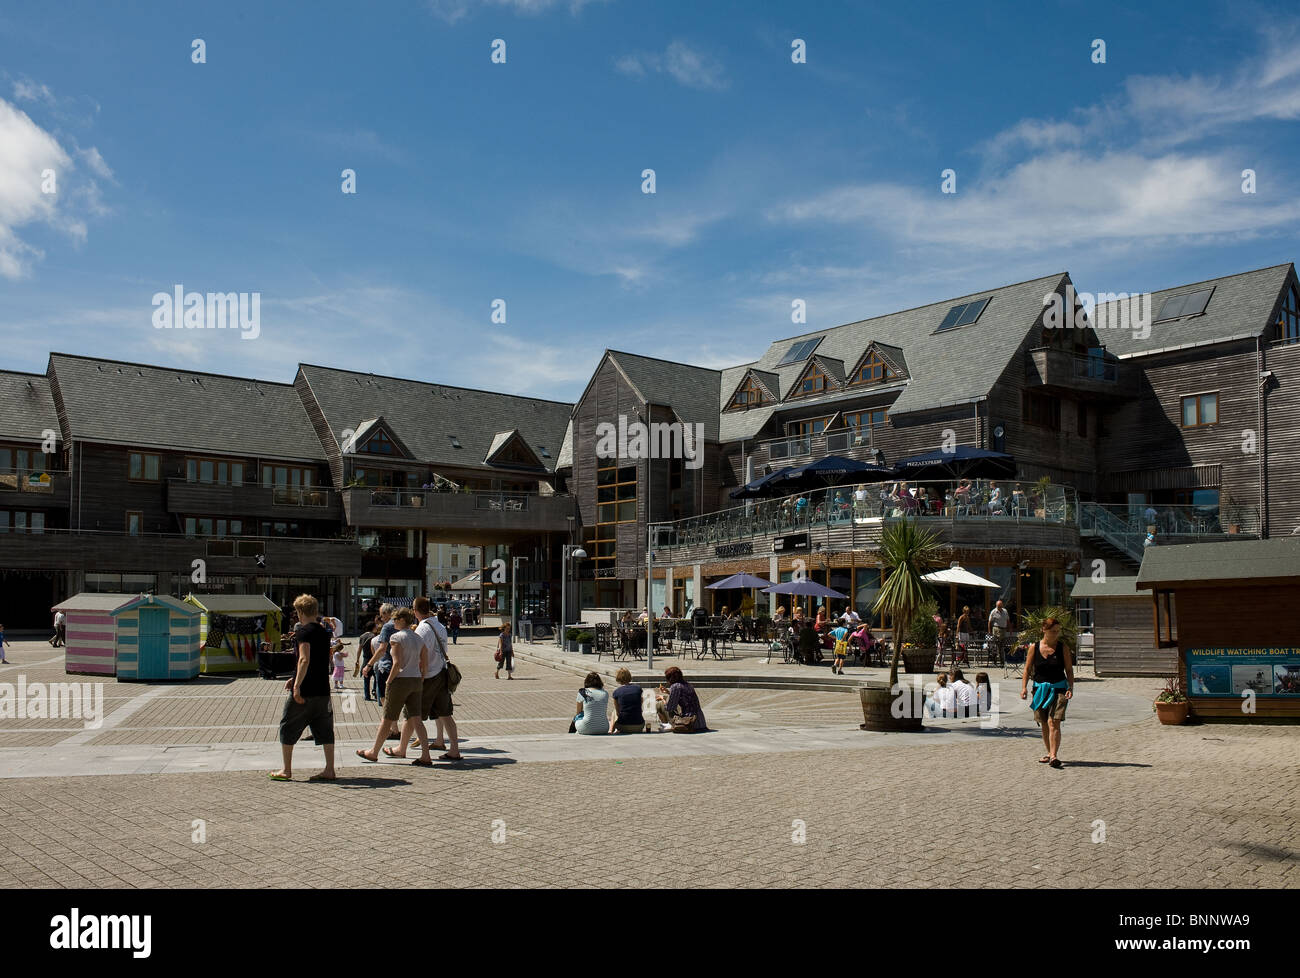 Discovery Quay in Falmouth in Cornwall. - Stock Image